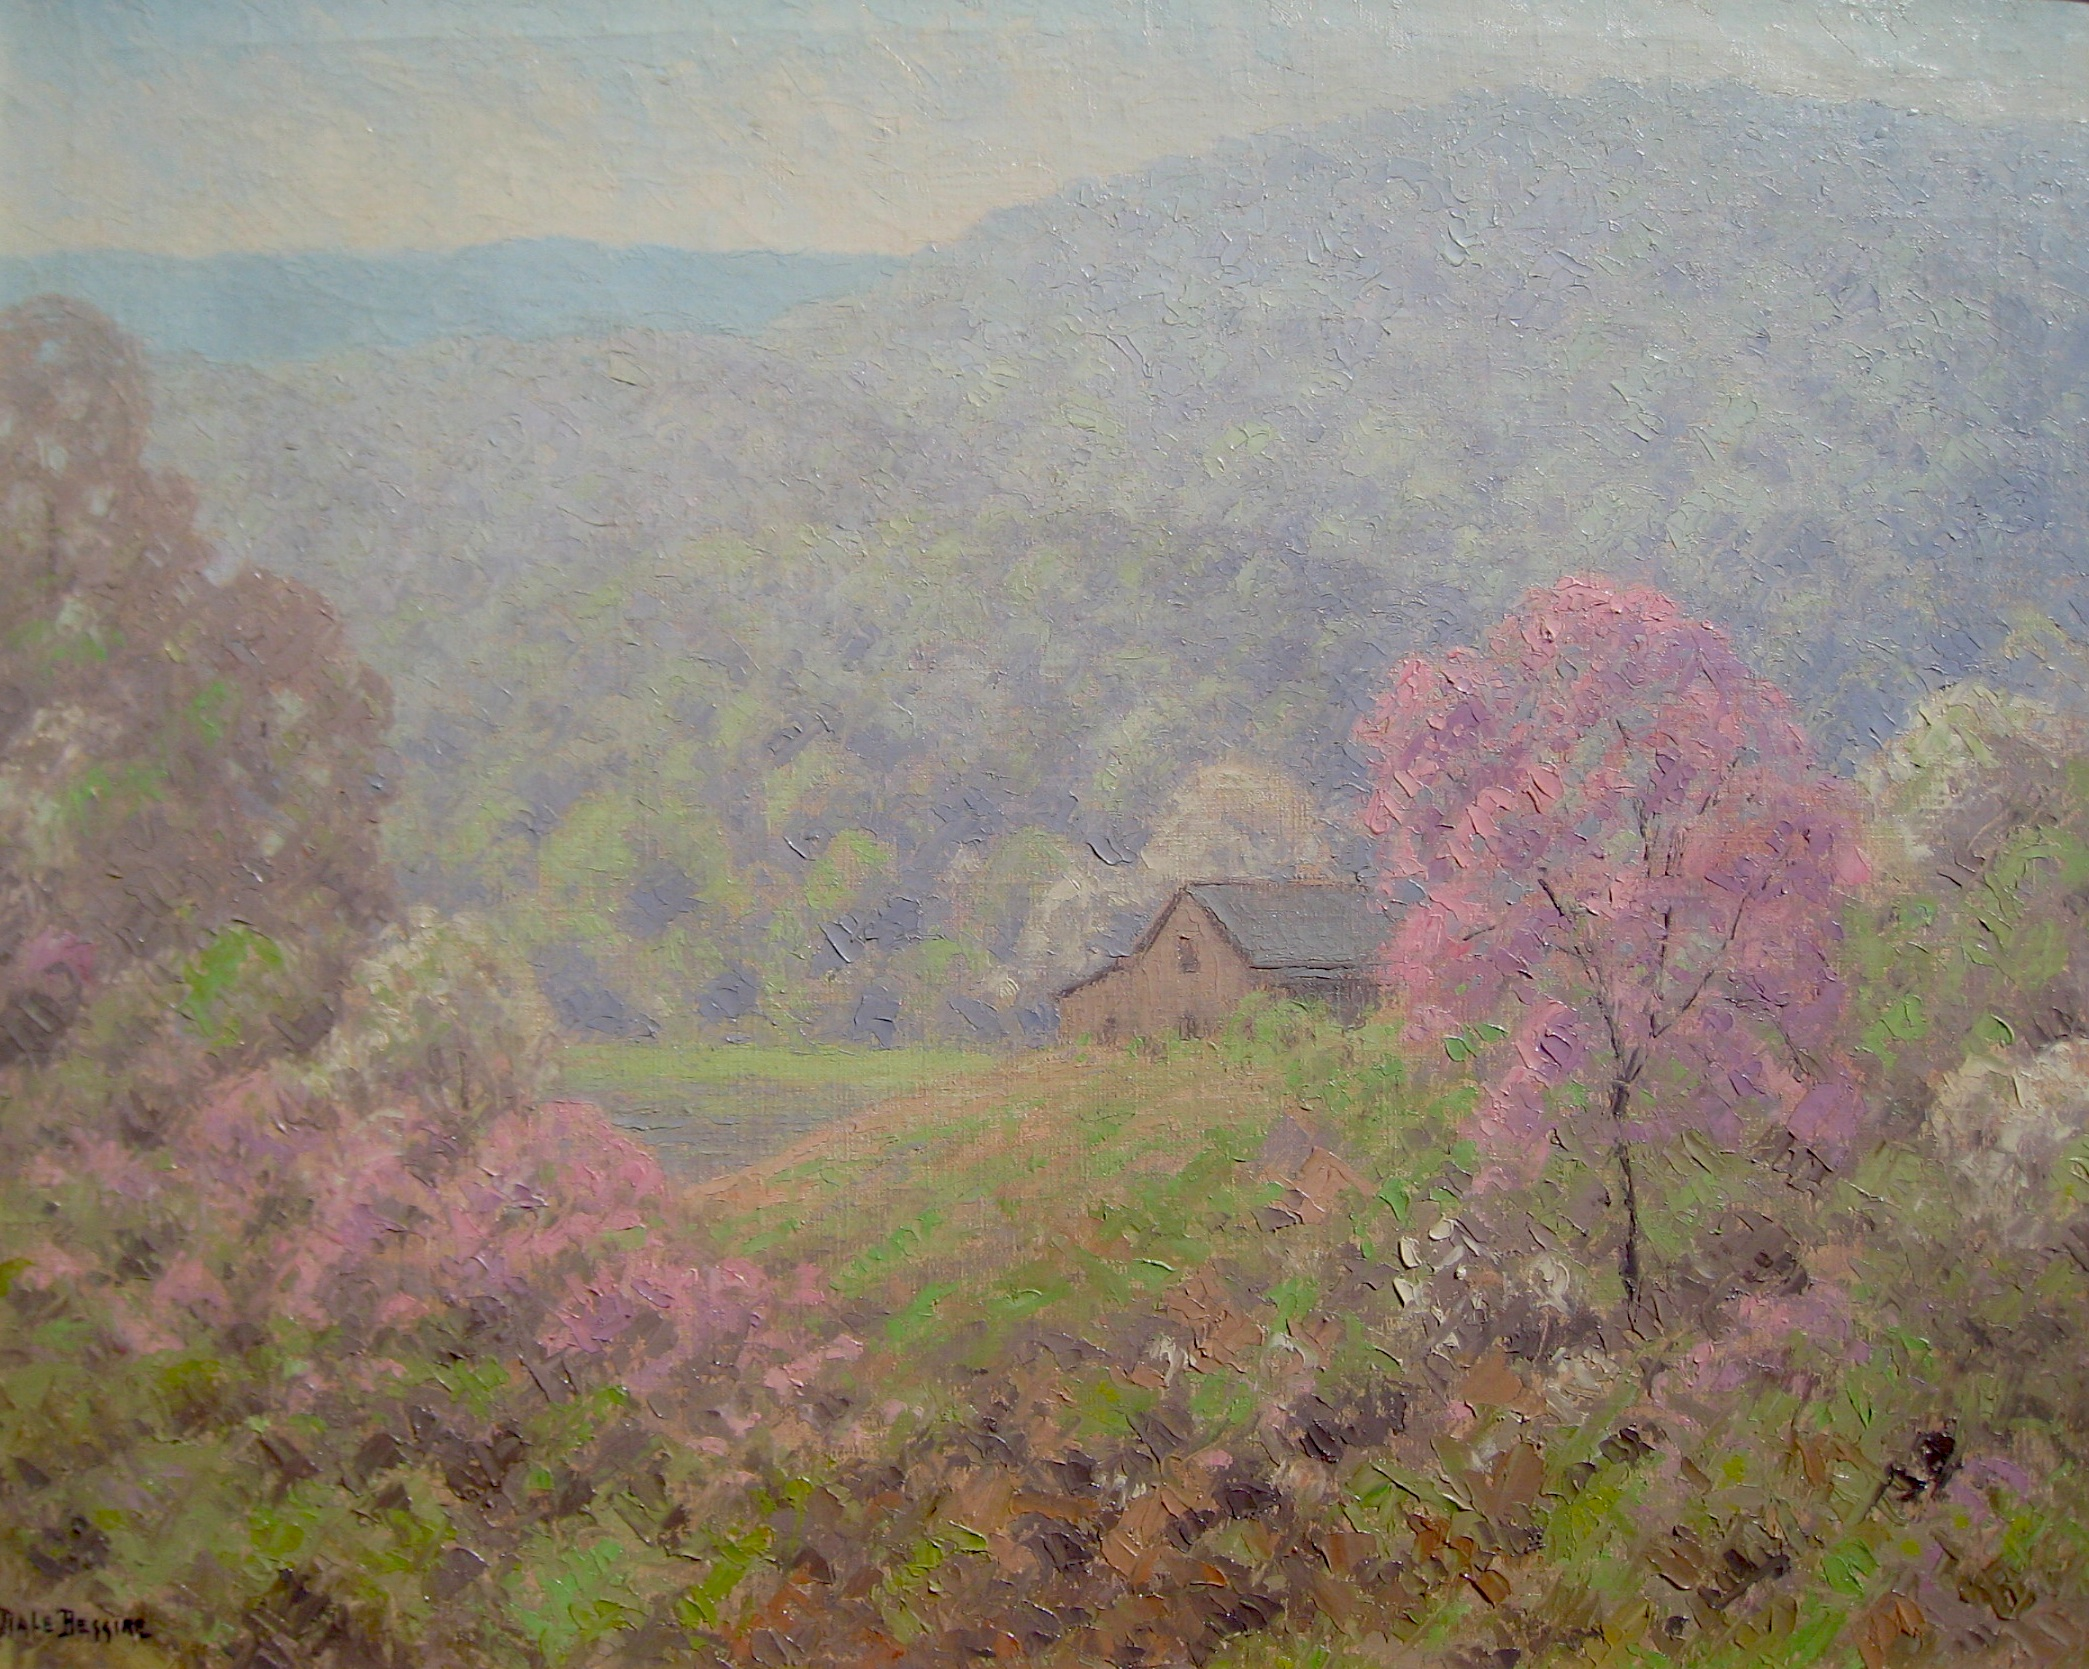 bessire-hillsofspring-cropped